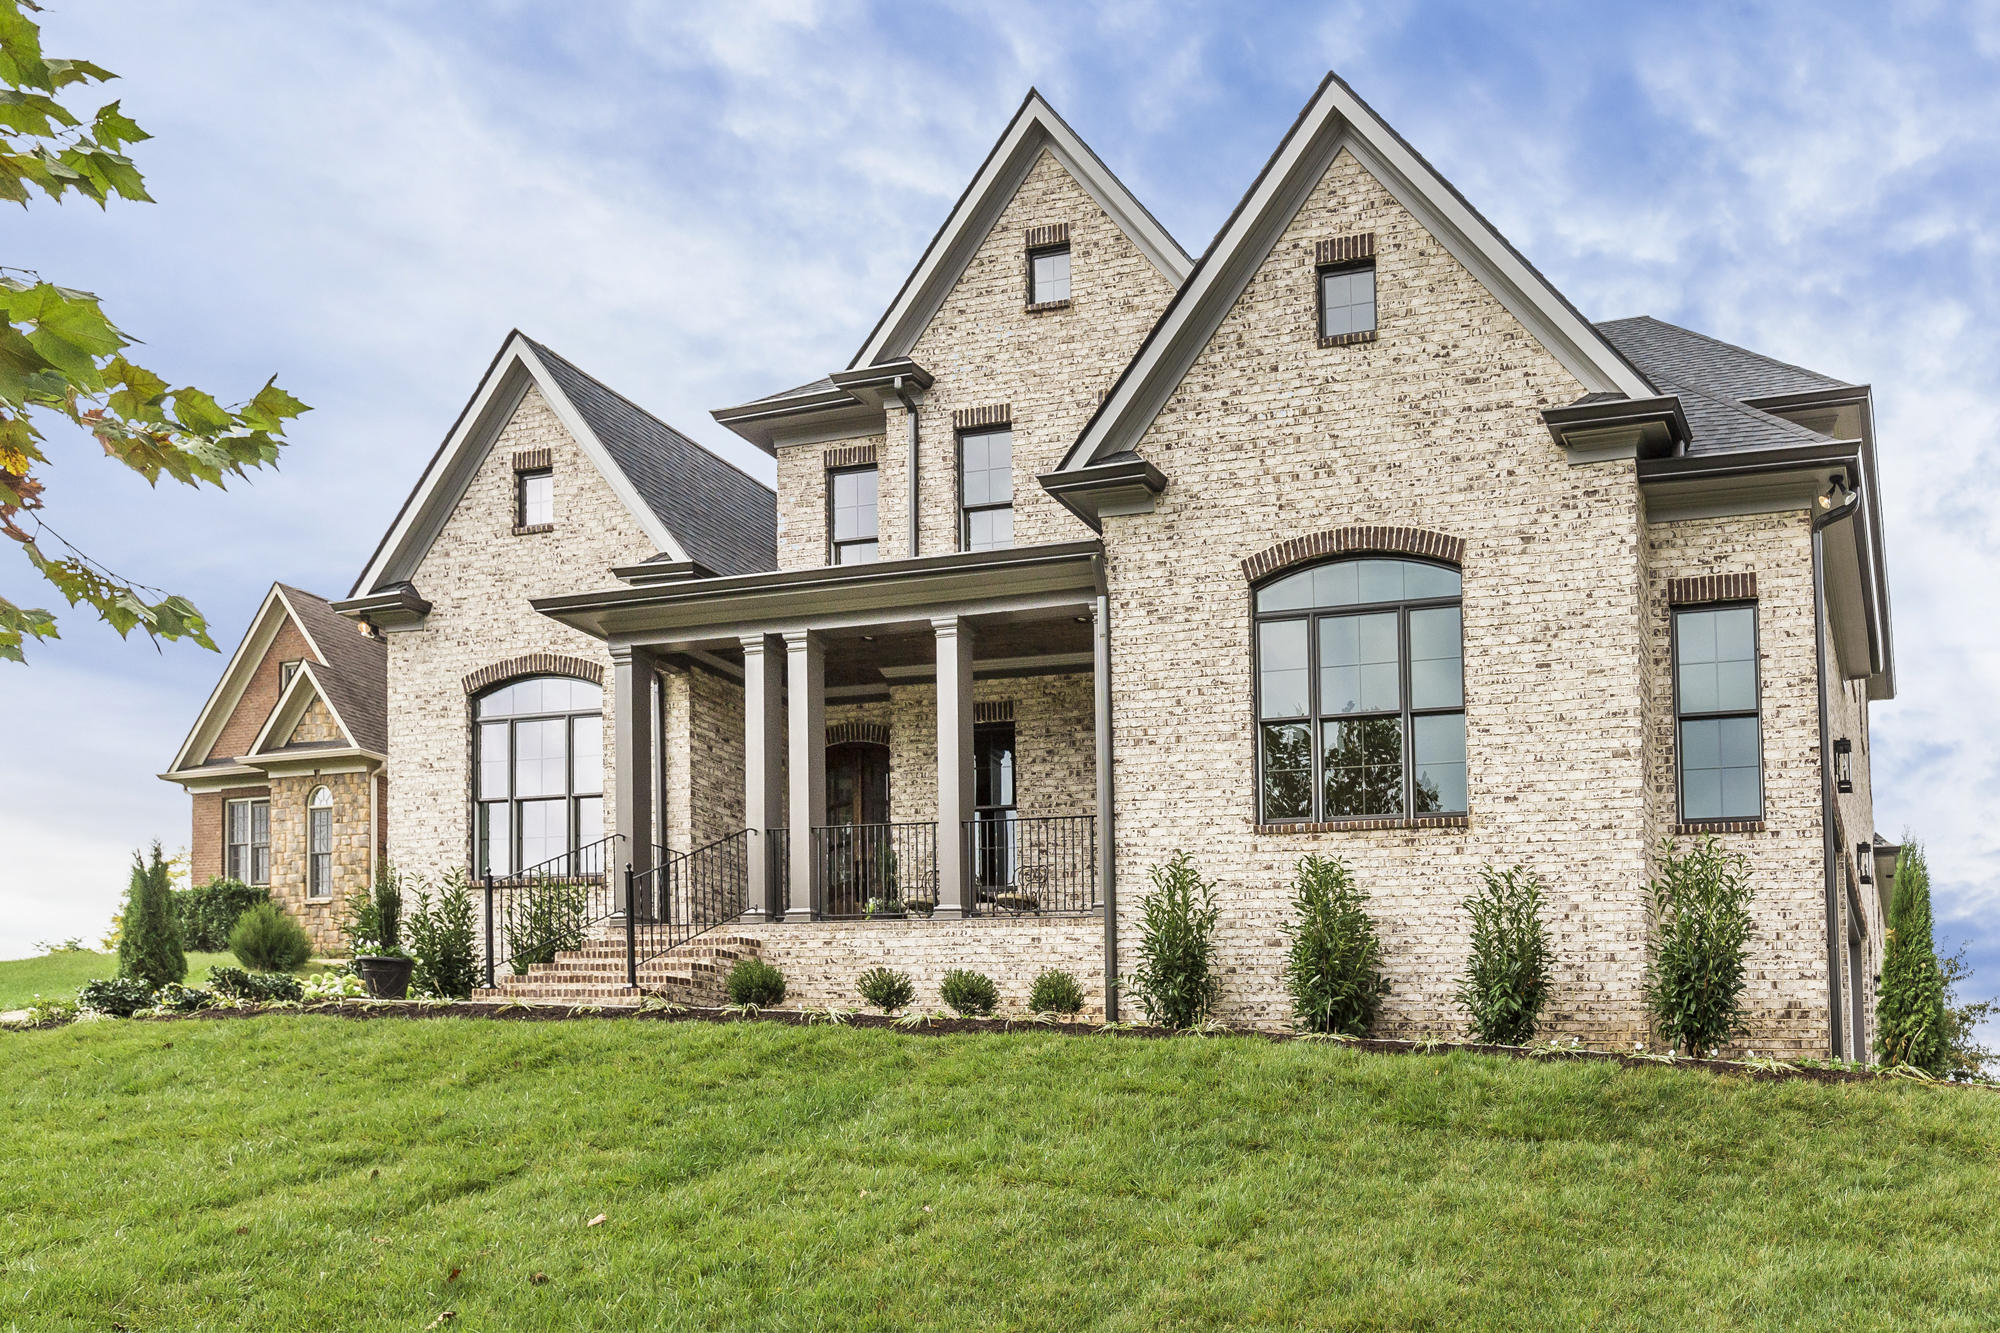 501 LONE WILLOW LANE, KNOXVILLE, TN 37934